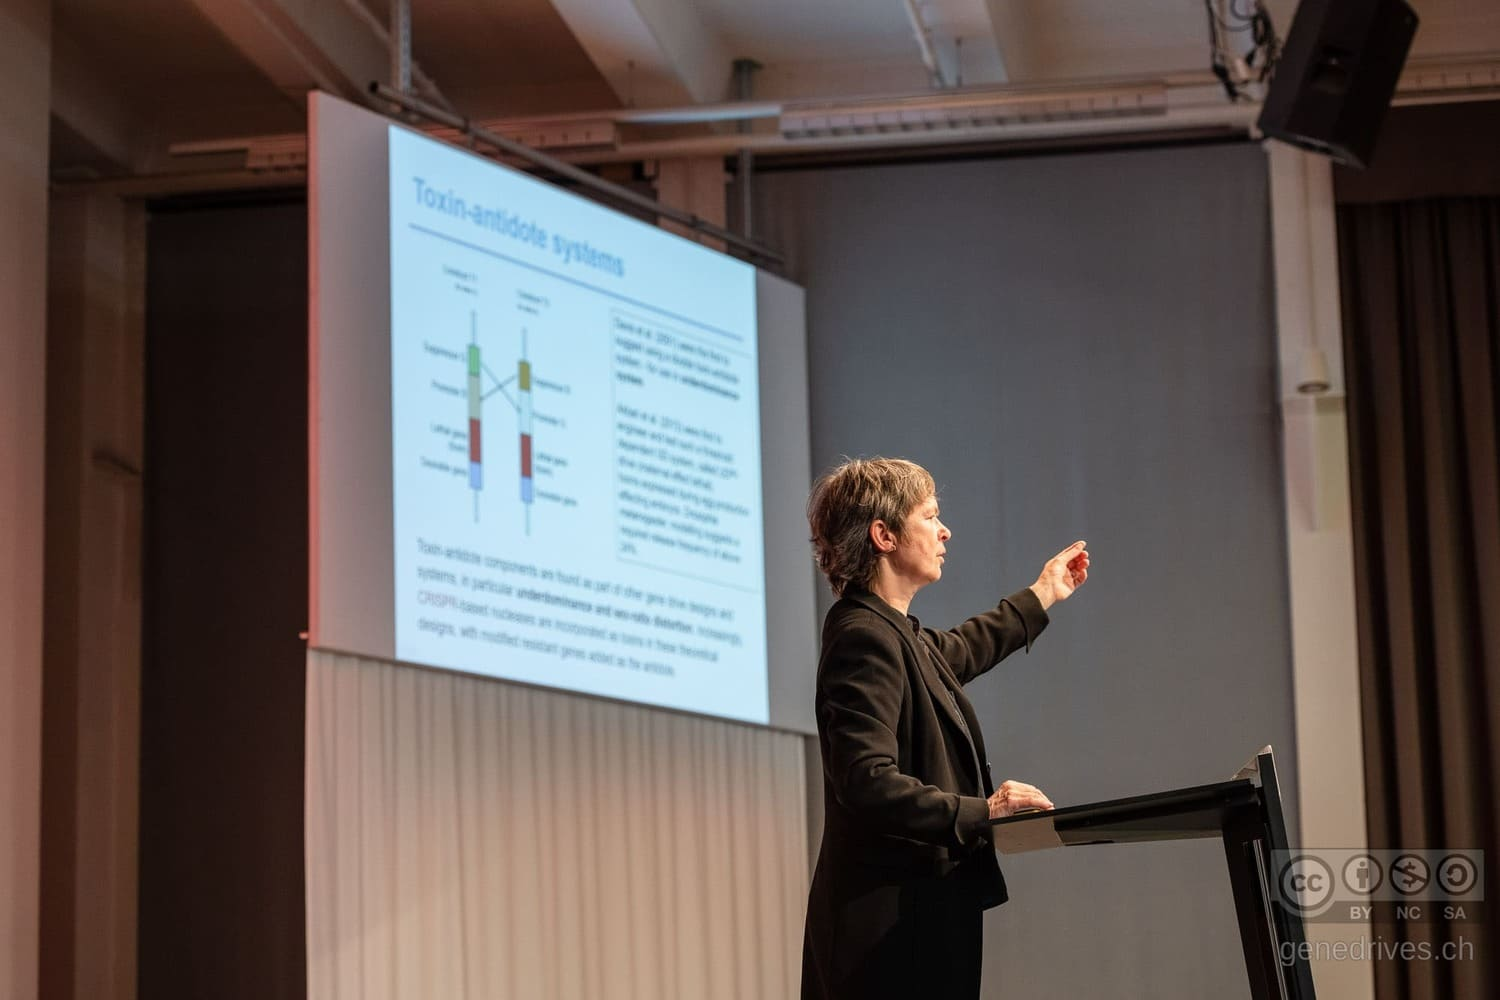 Ricarda Steinbrecher speaks about the techniques of GeneDrive at the Symposium 2019.